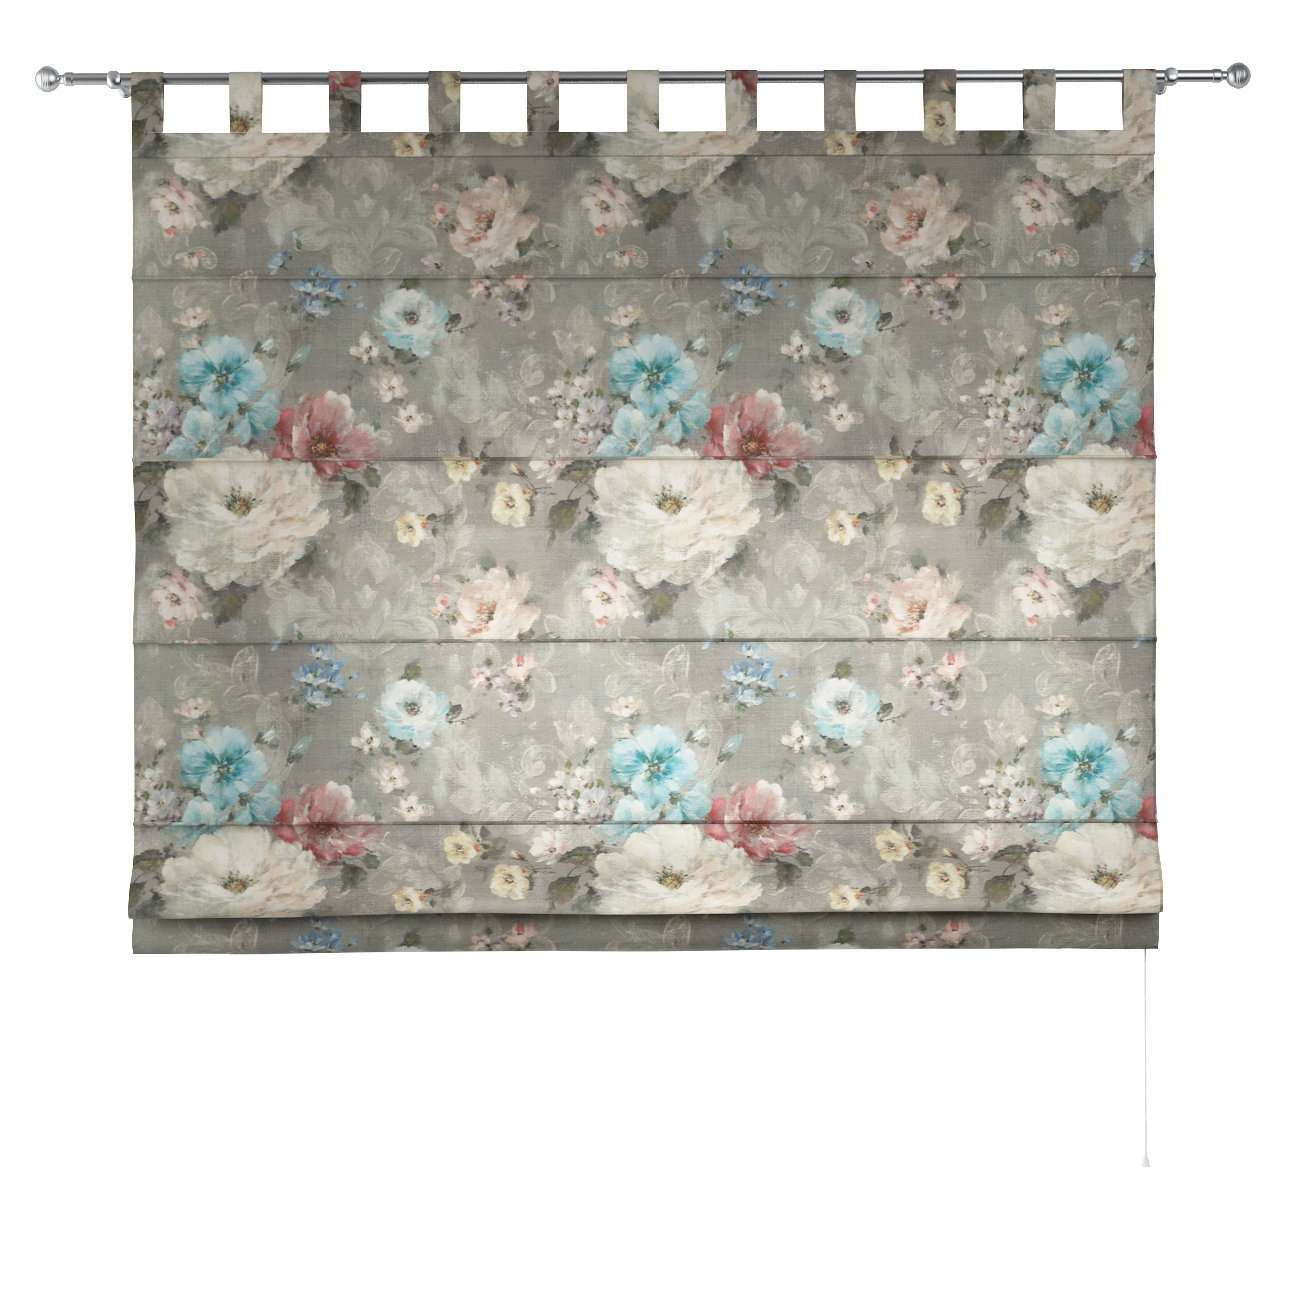 Verona tab top roman blind 80 x 170 cm (31.5 x 67 inch) in collection Monet, fabric: 137-81